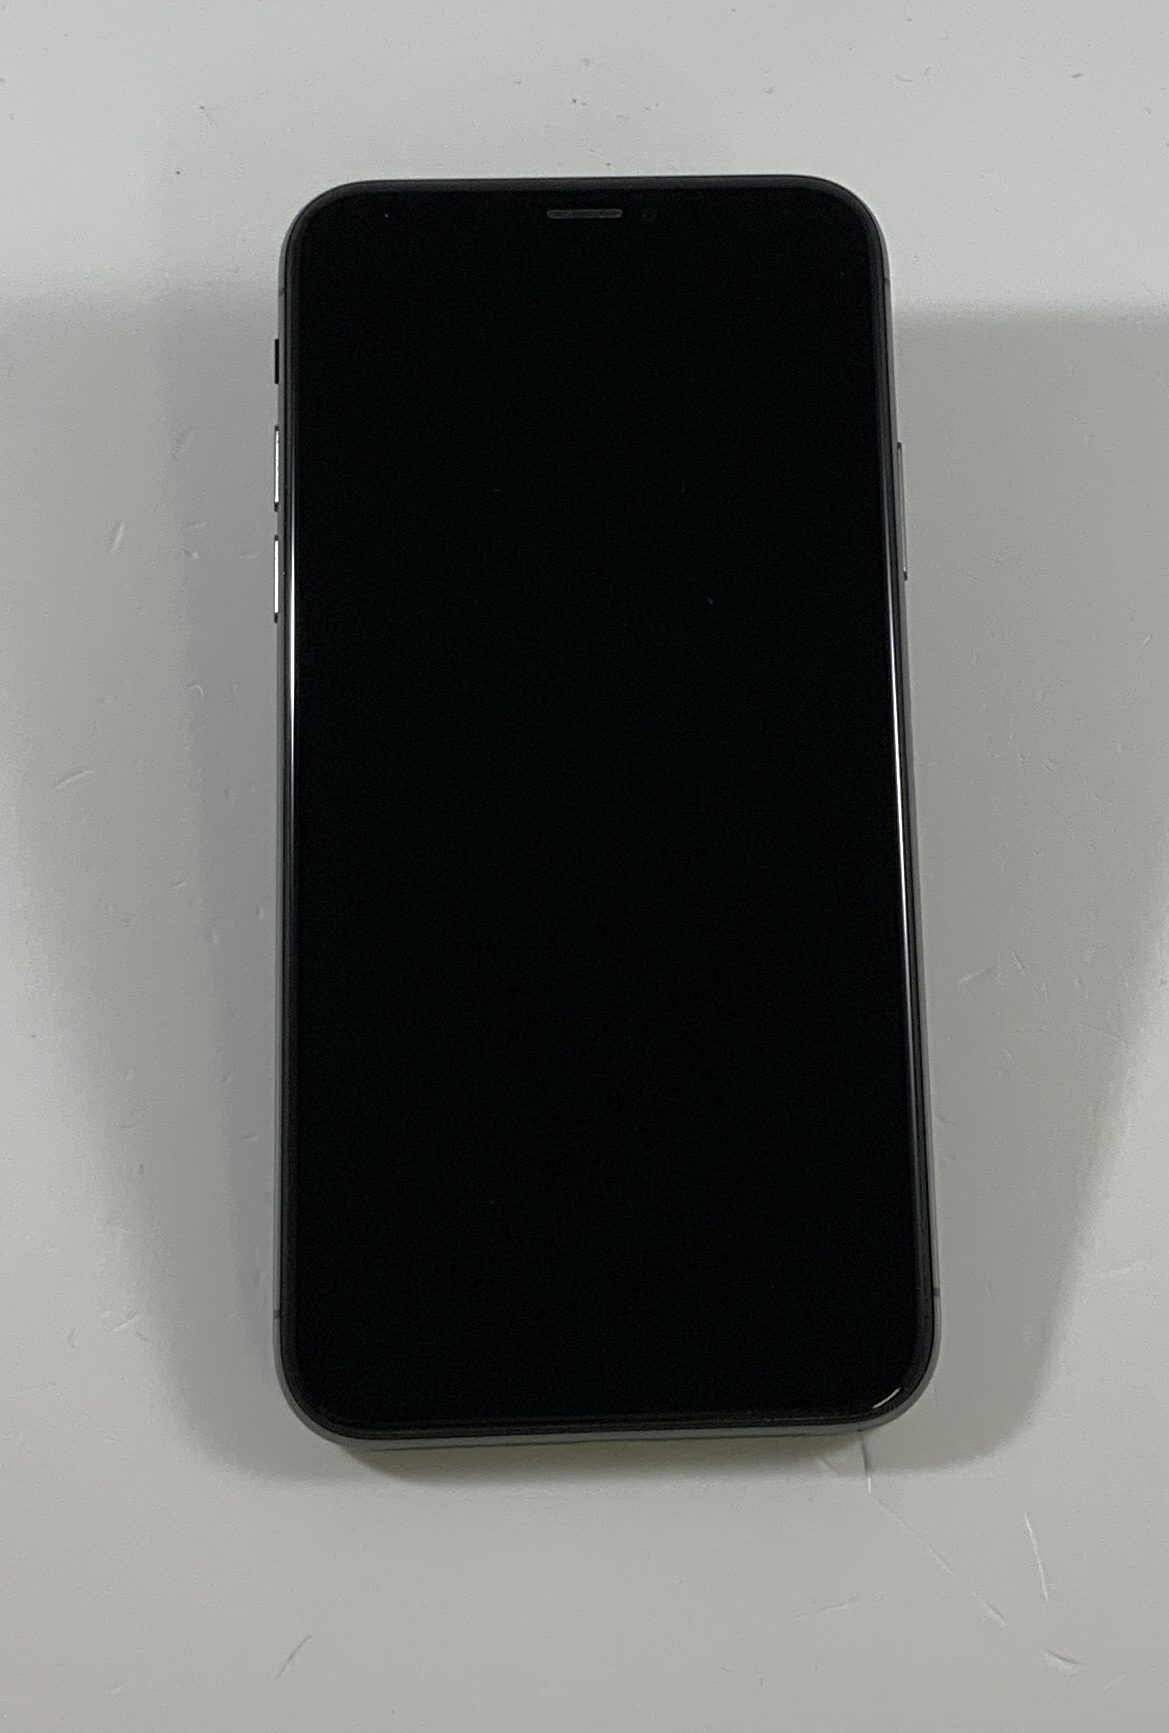 iPhone X 256GB, 256GB, Space Gray, immagine 1